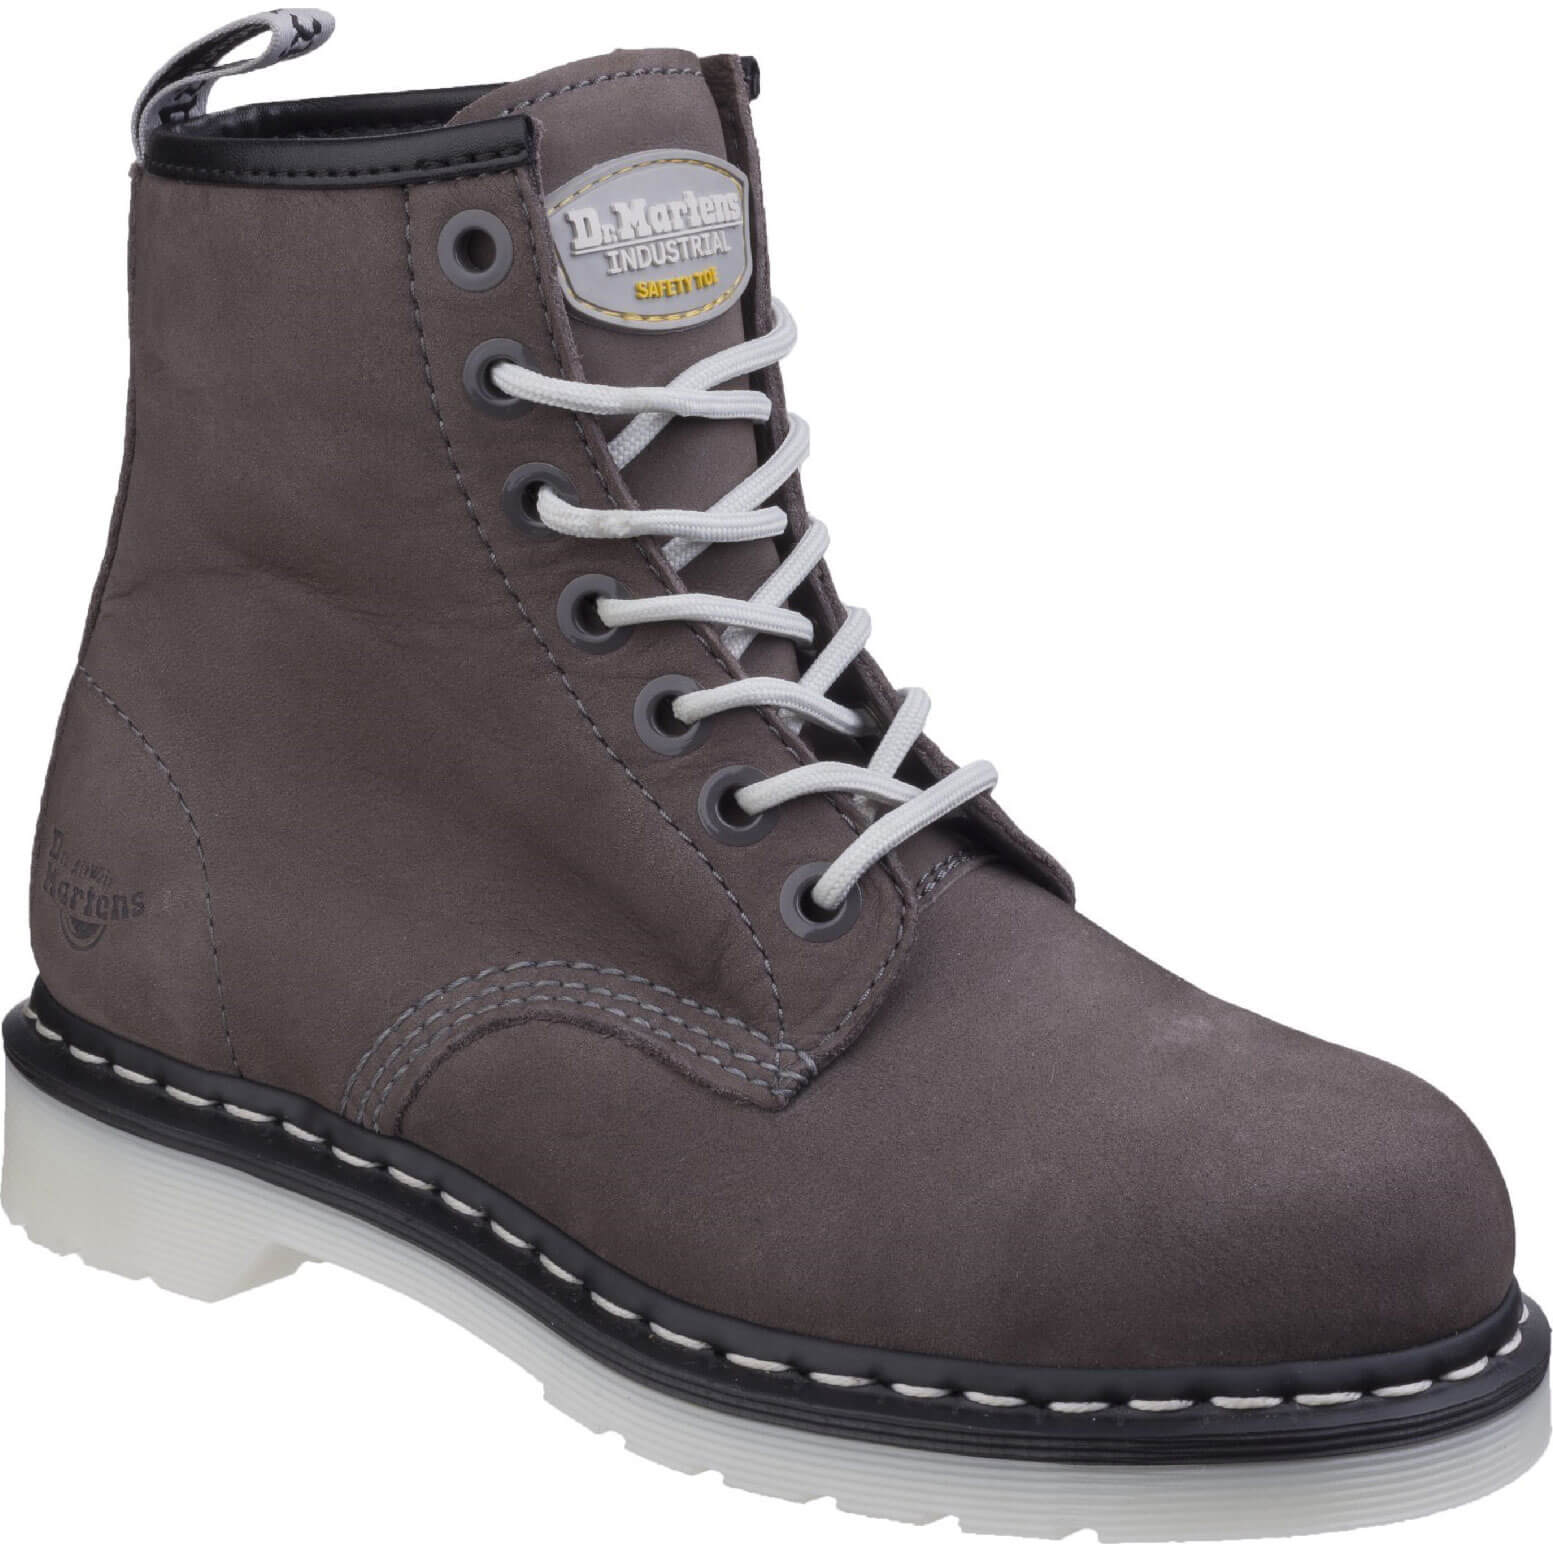 CHEAP Dr Martens Mens Maple Classic Safety Work Boots Grey Size 6 – Men's Footwear